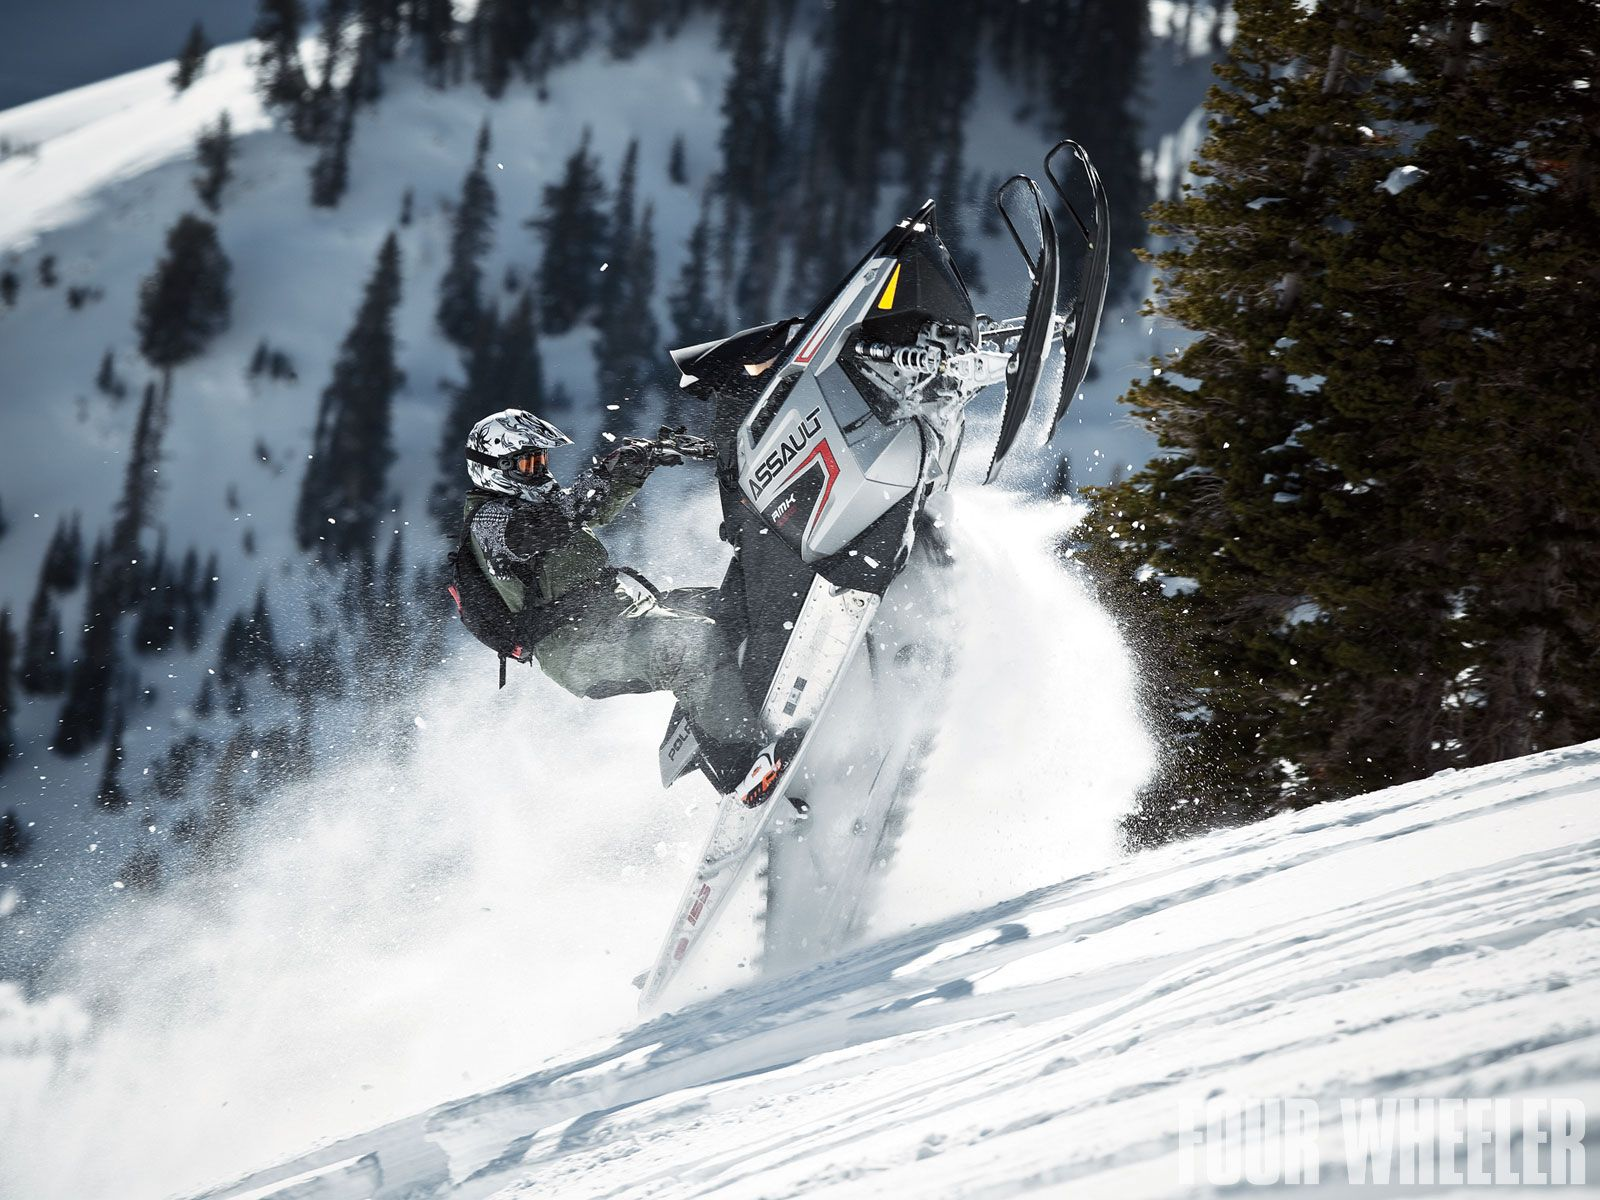 Snowmobile Wallpaper Backgrounds | Posted by djuqy rose